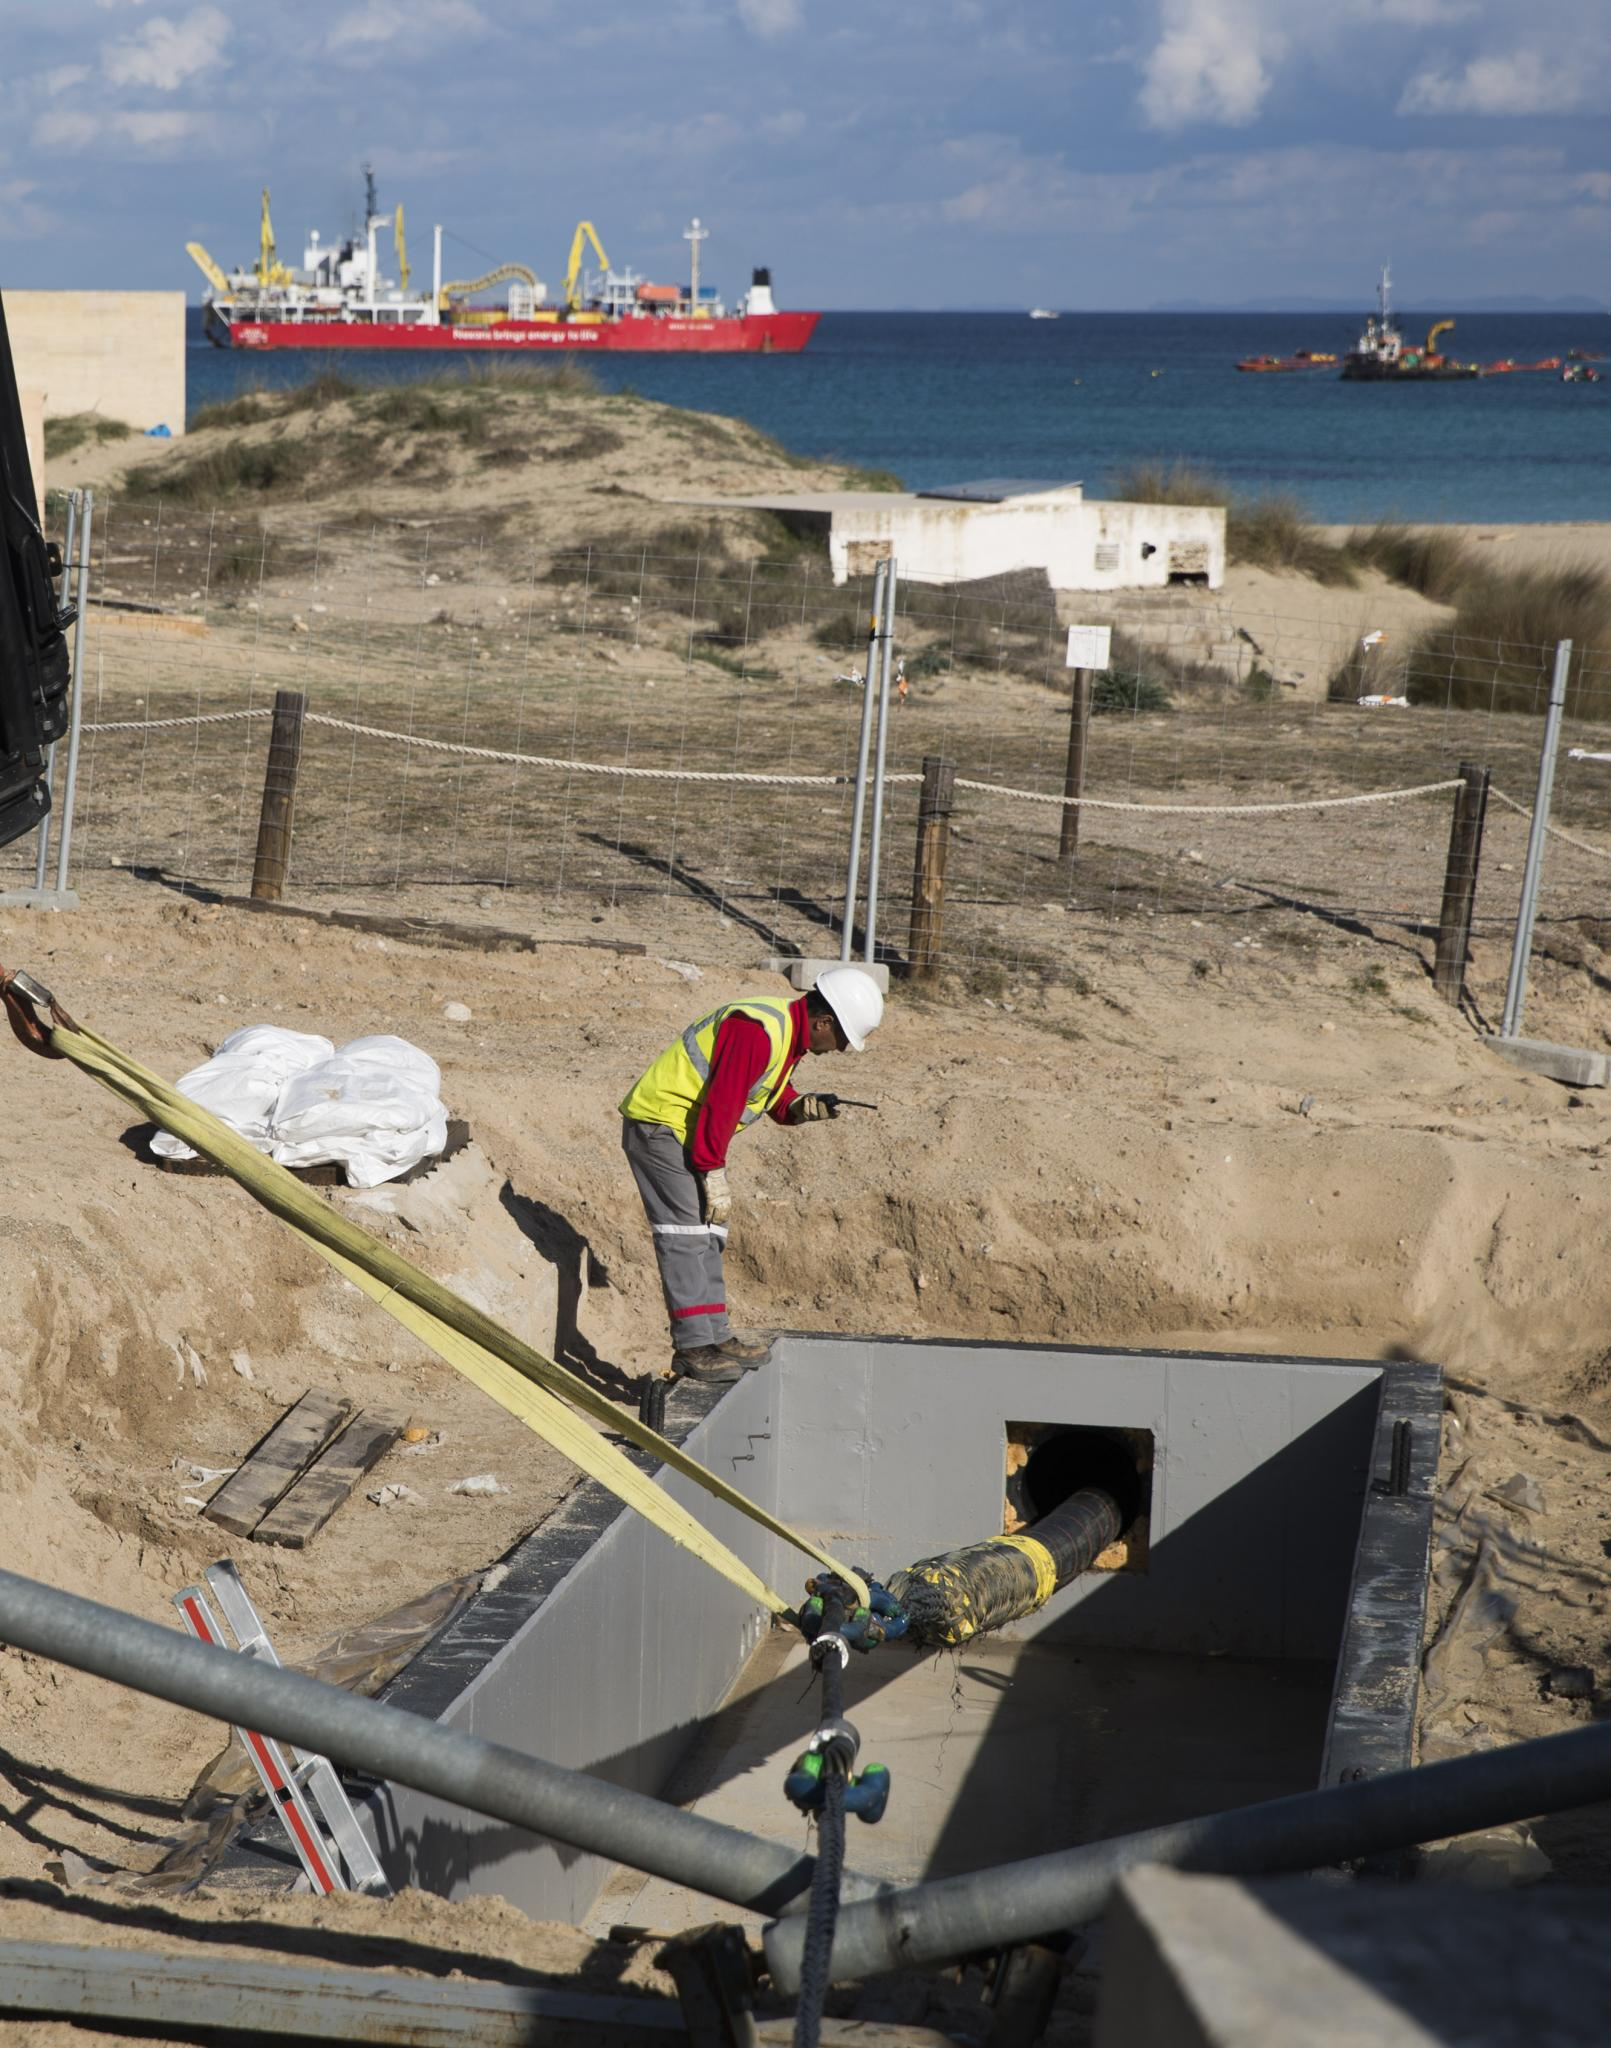 Installation of the 41 km electric cable between Minorca and Majorca